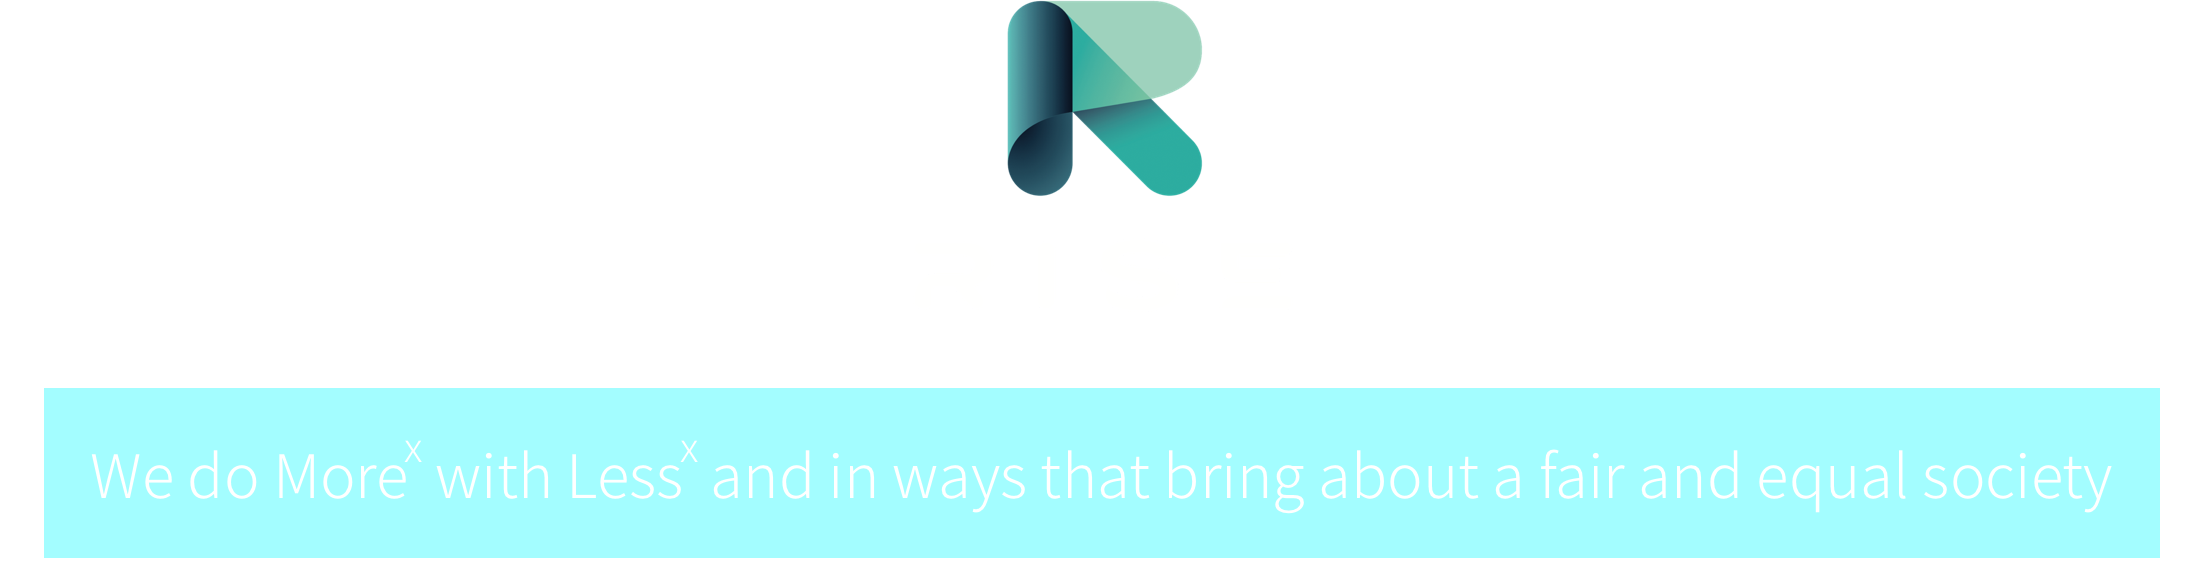 rise title_1 (1).png